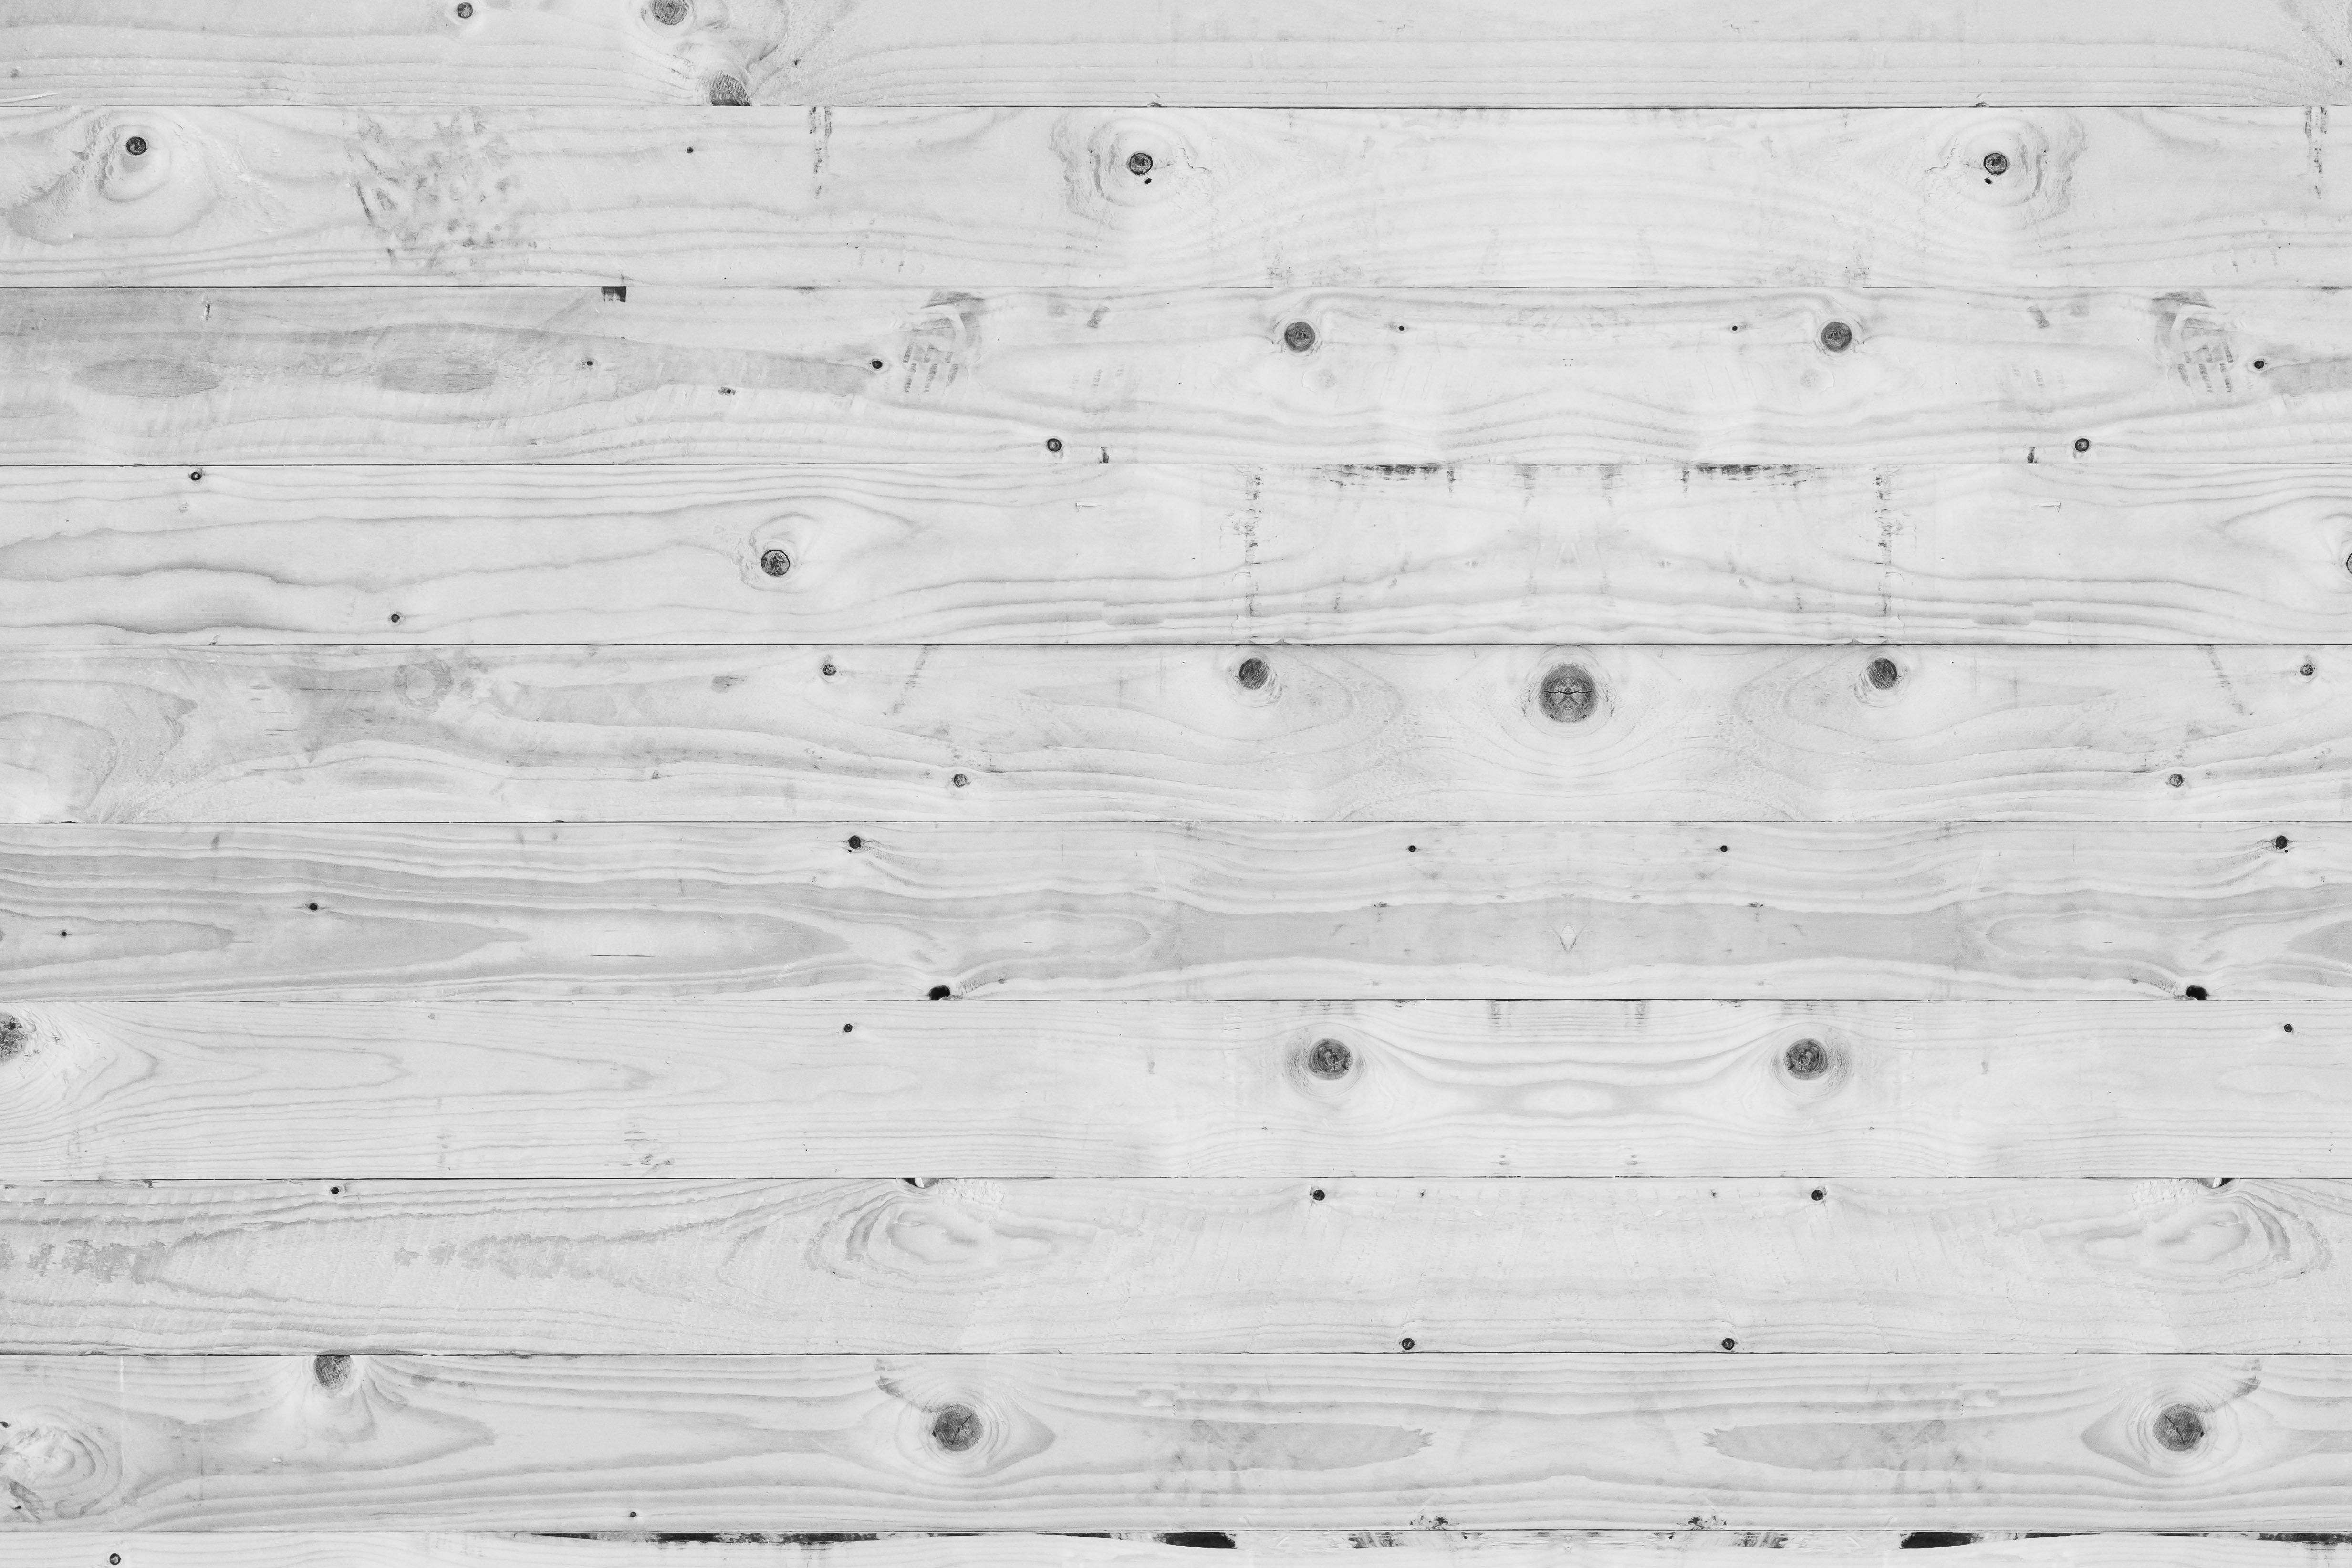 bigstock-grunge-white-wood-and-rustic-w-82142390-2.jpg (4930×3287 ... for White Wood Texture Hd  56bof